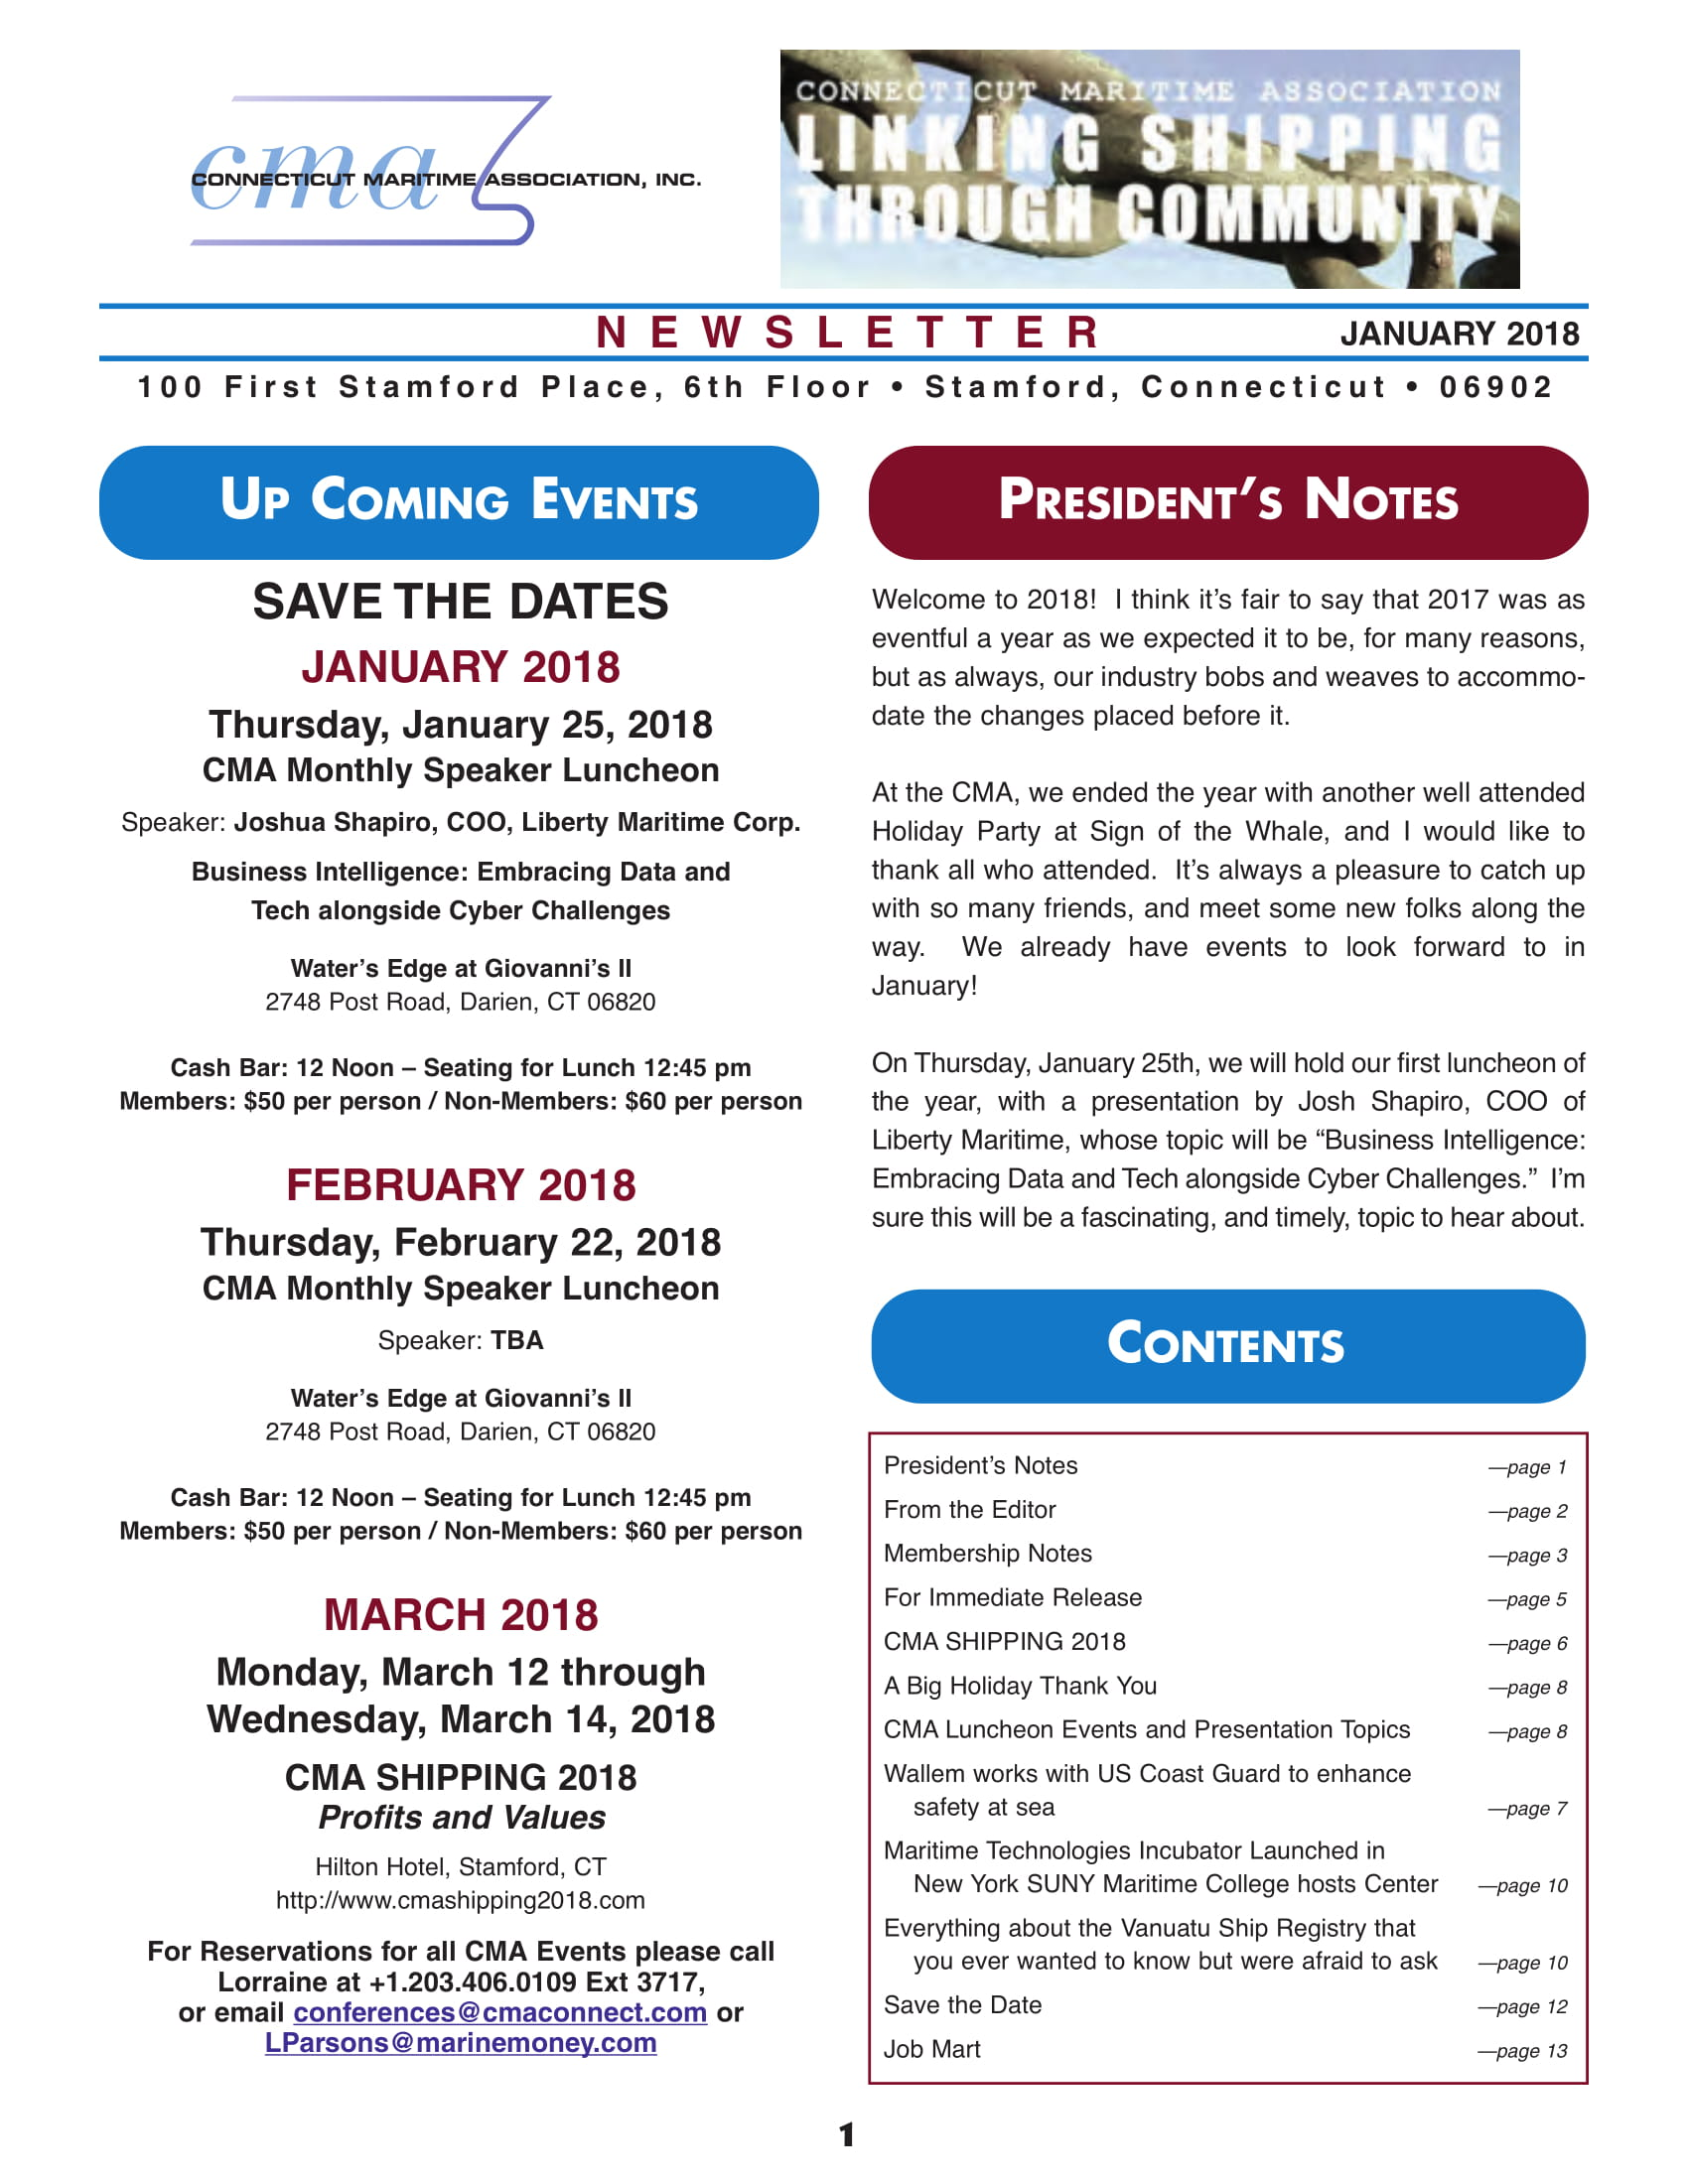 newsletter save the date email example